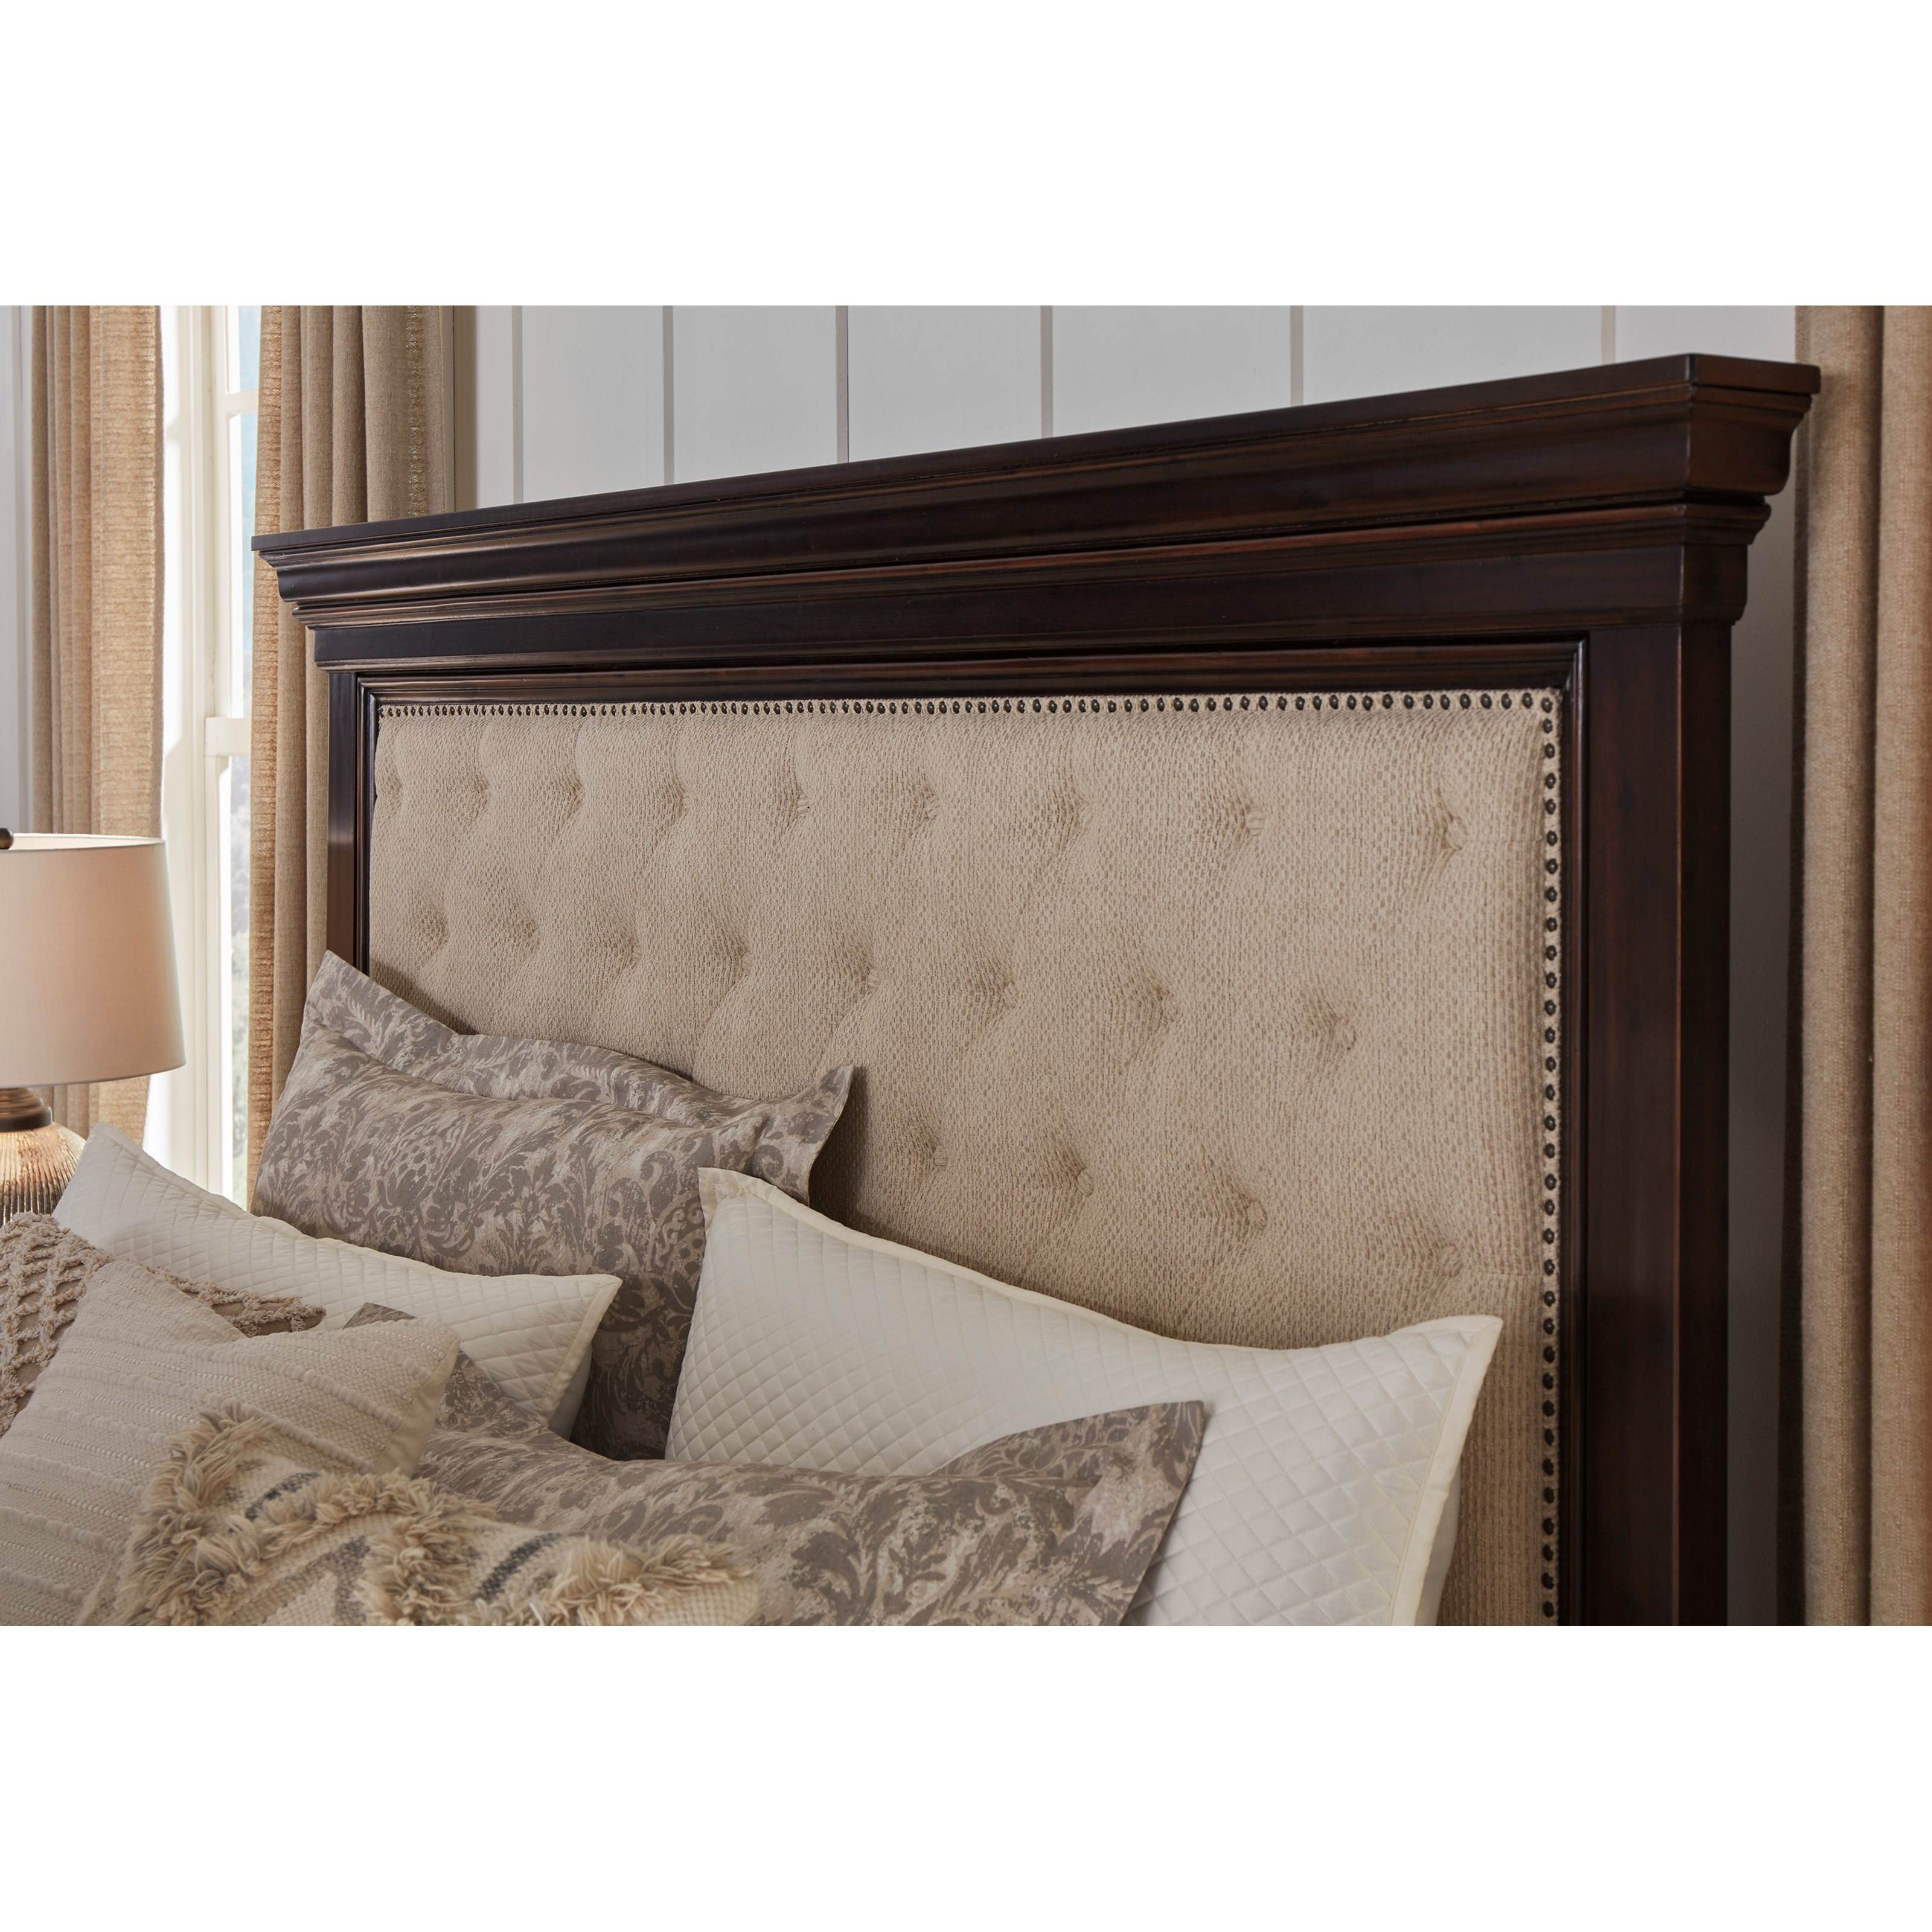 Bench By Bed: Signature Design By Ashley Brynhurst Traditional Queen